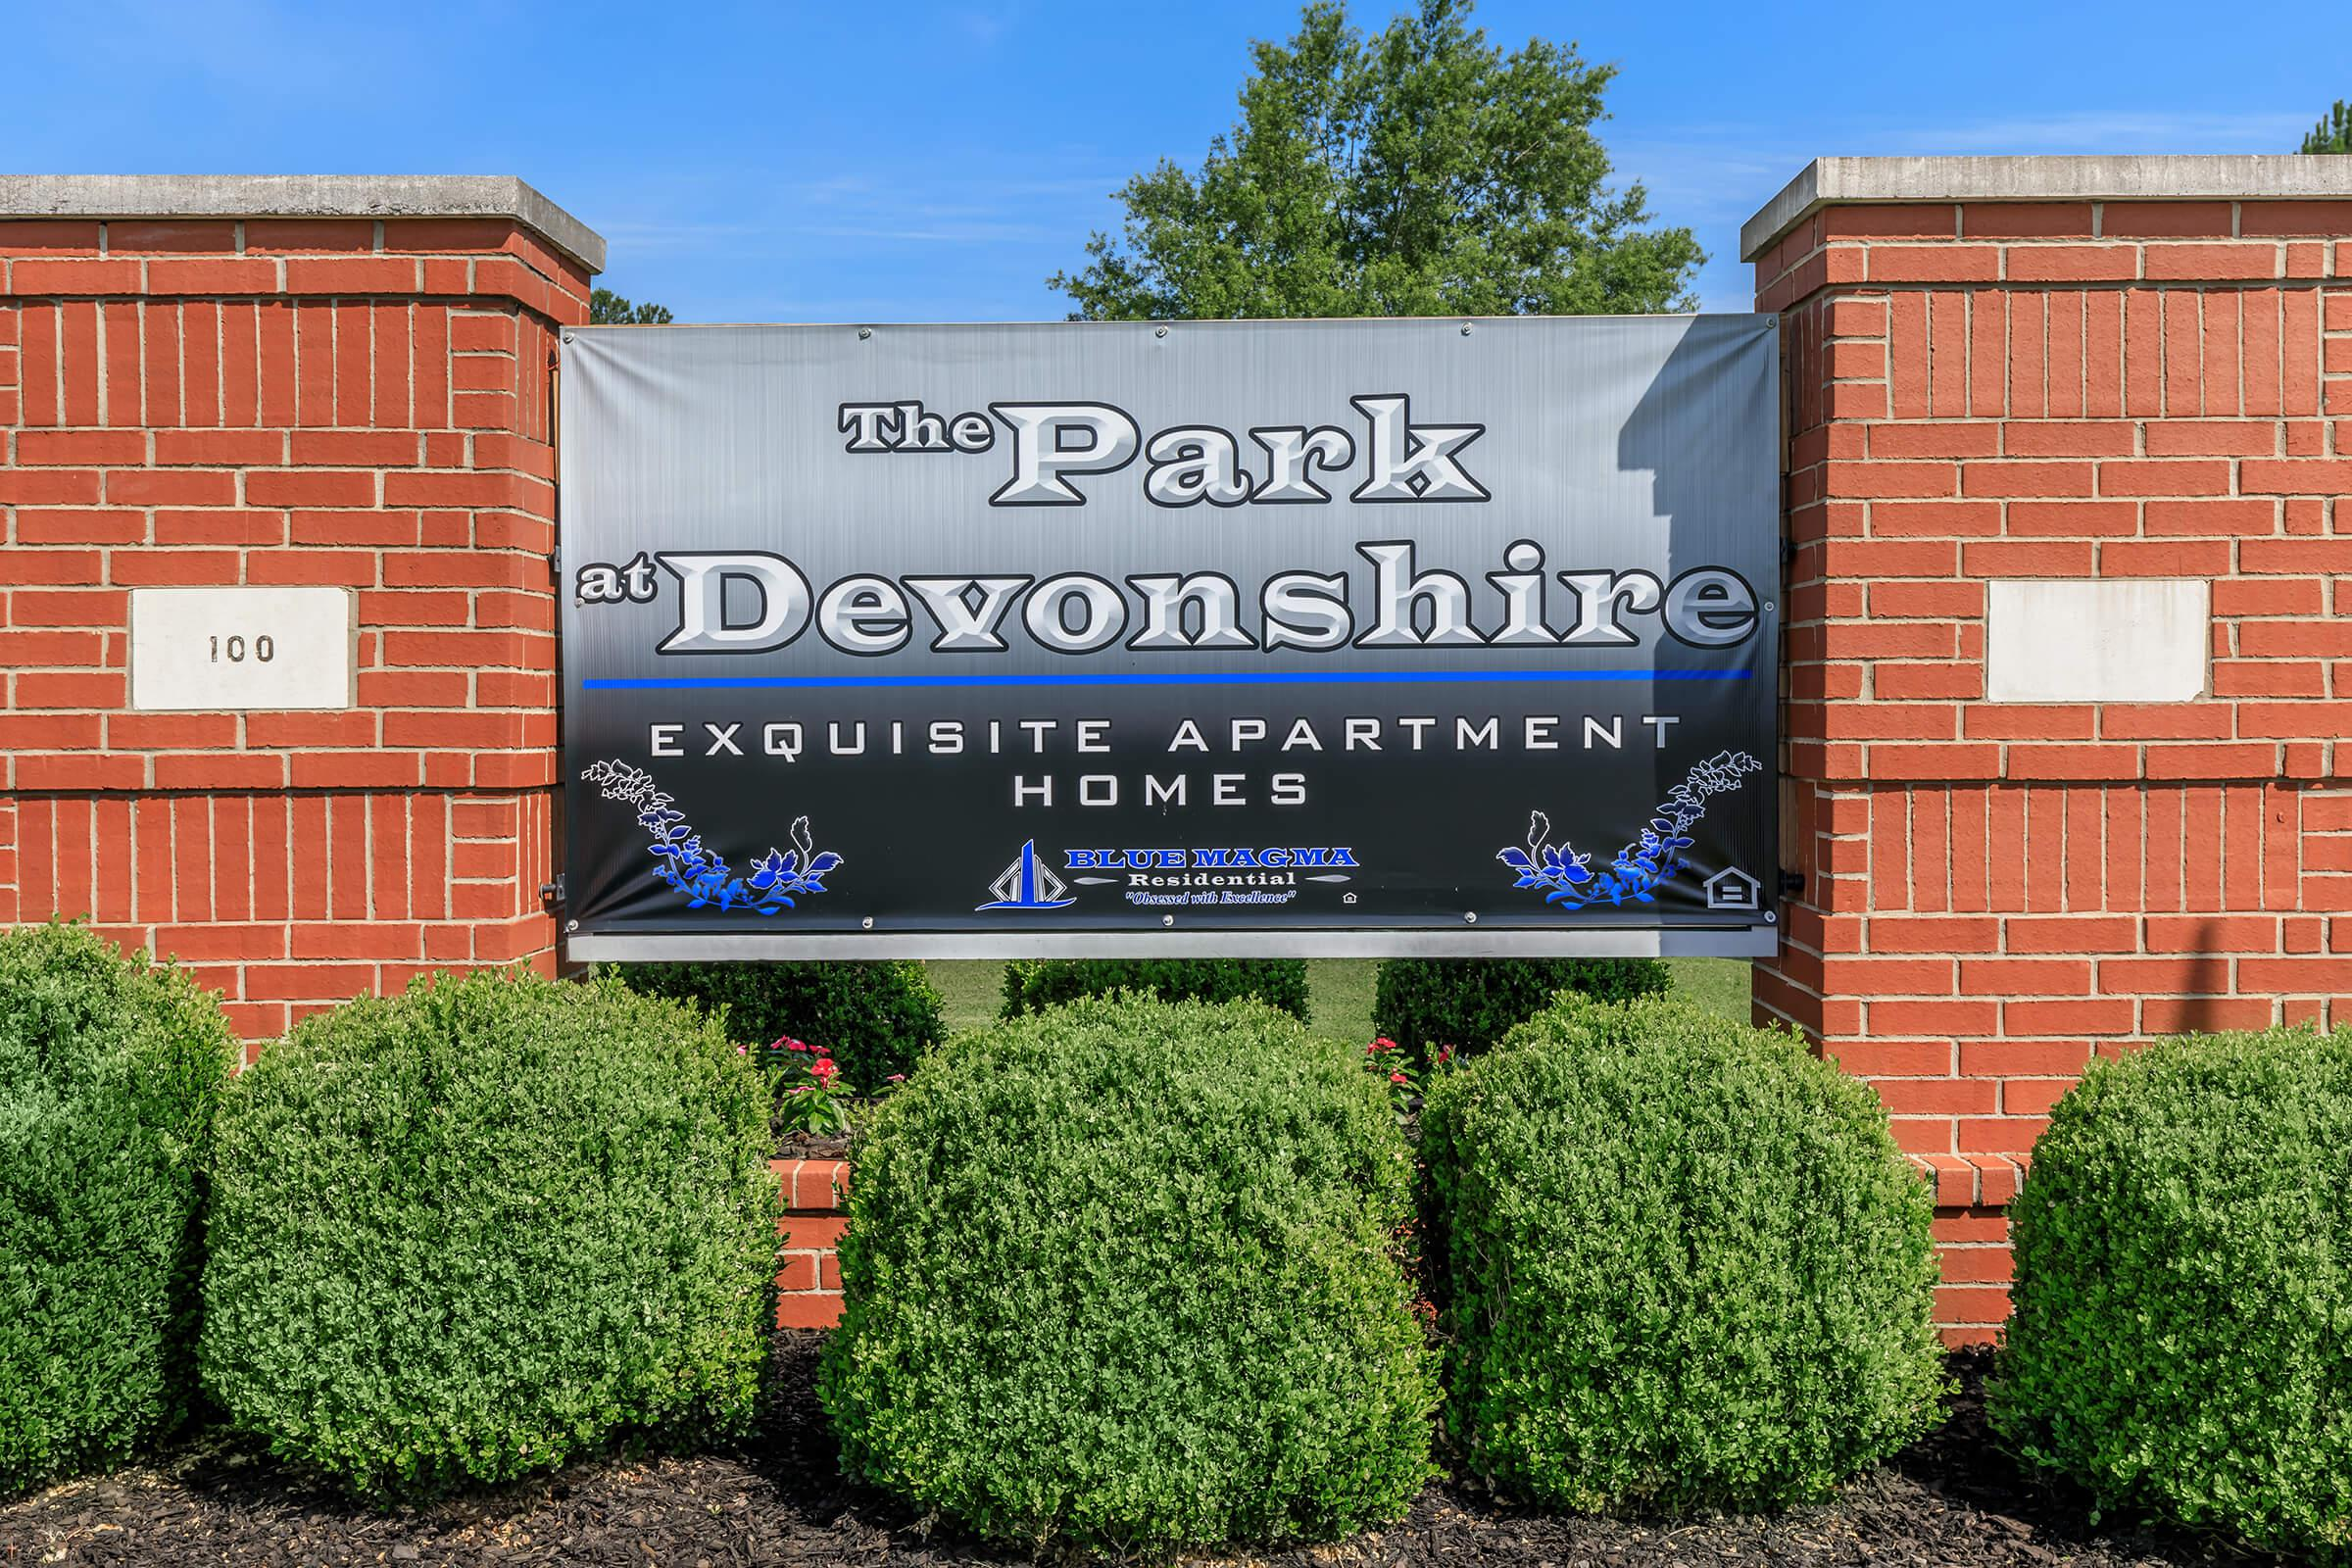 a sign in front of a brick building